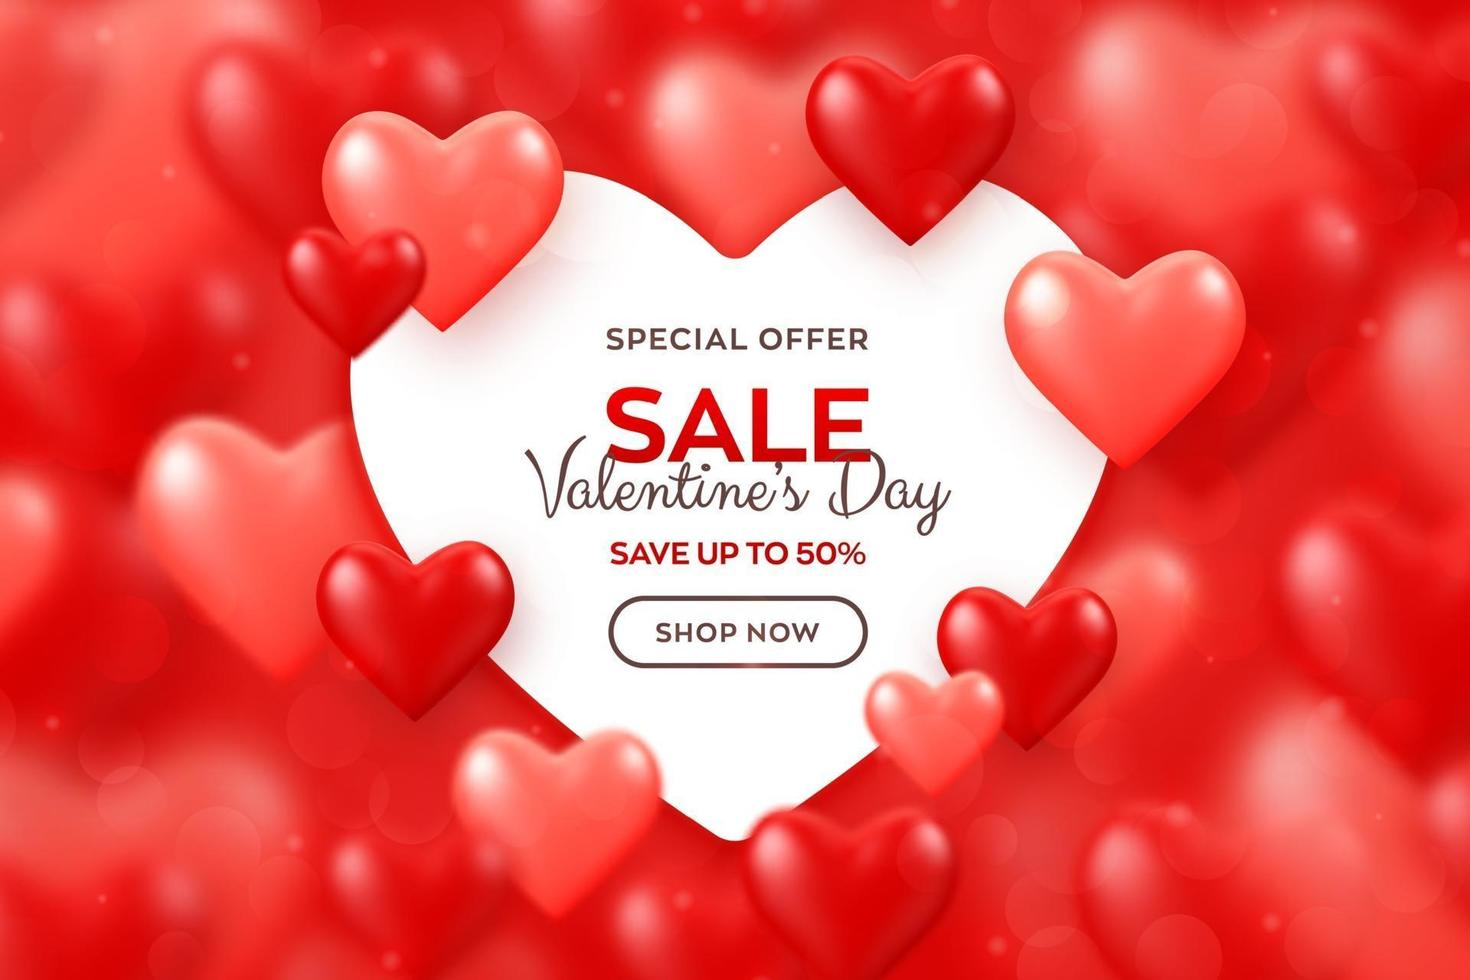 Happy Valentines day sale banner. Shining red and pink balloons 3d hearts background with heart shaped paper banner. Wallpaper, flyer, poster, brochure, greeting card. vector